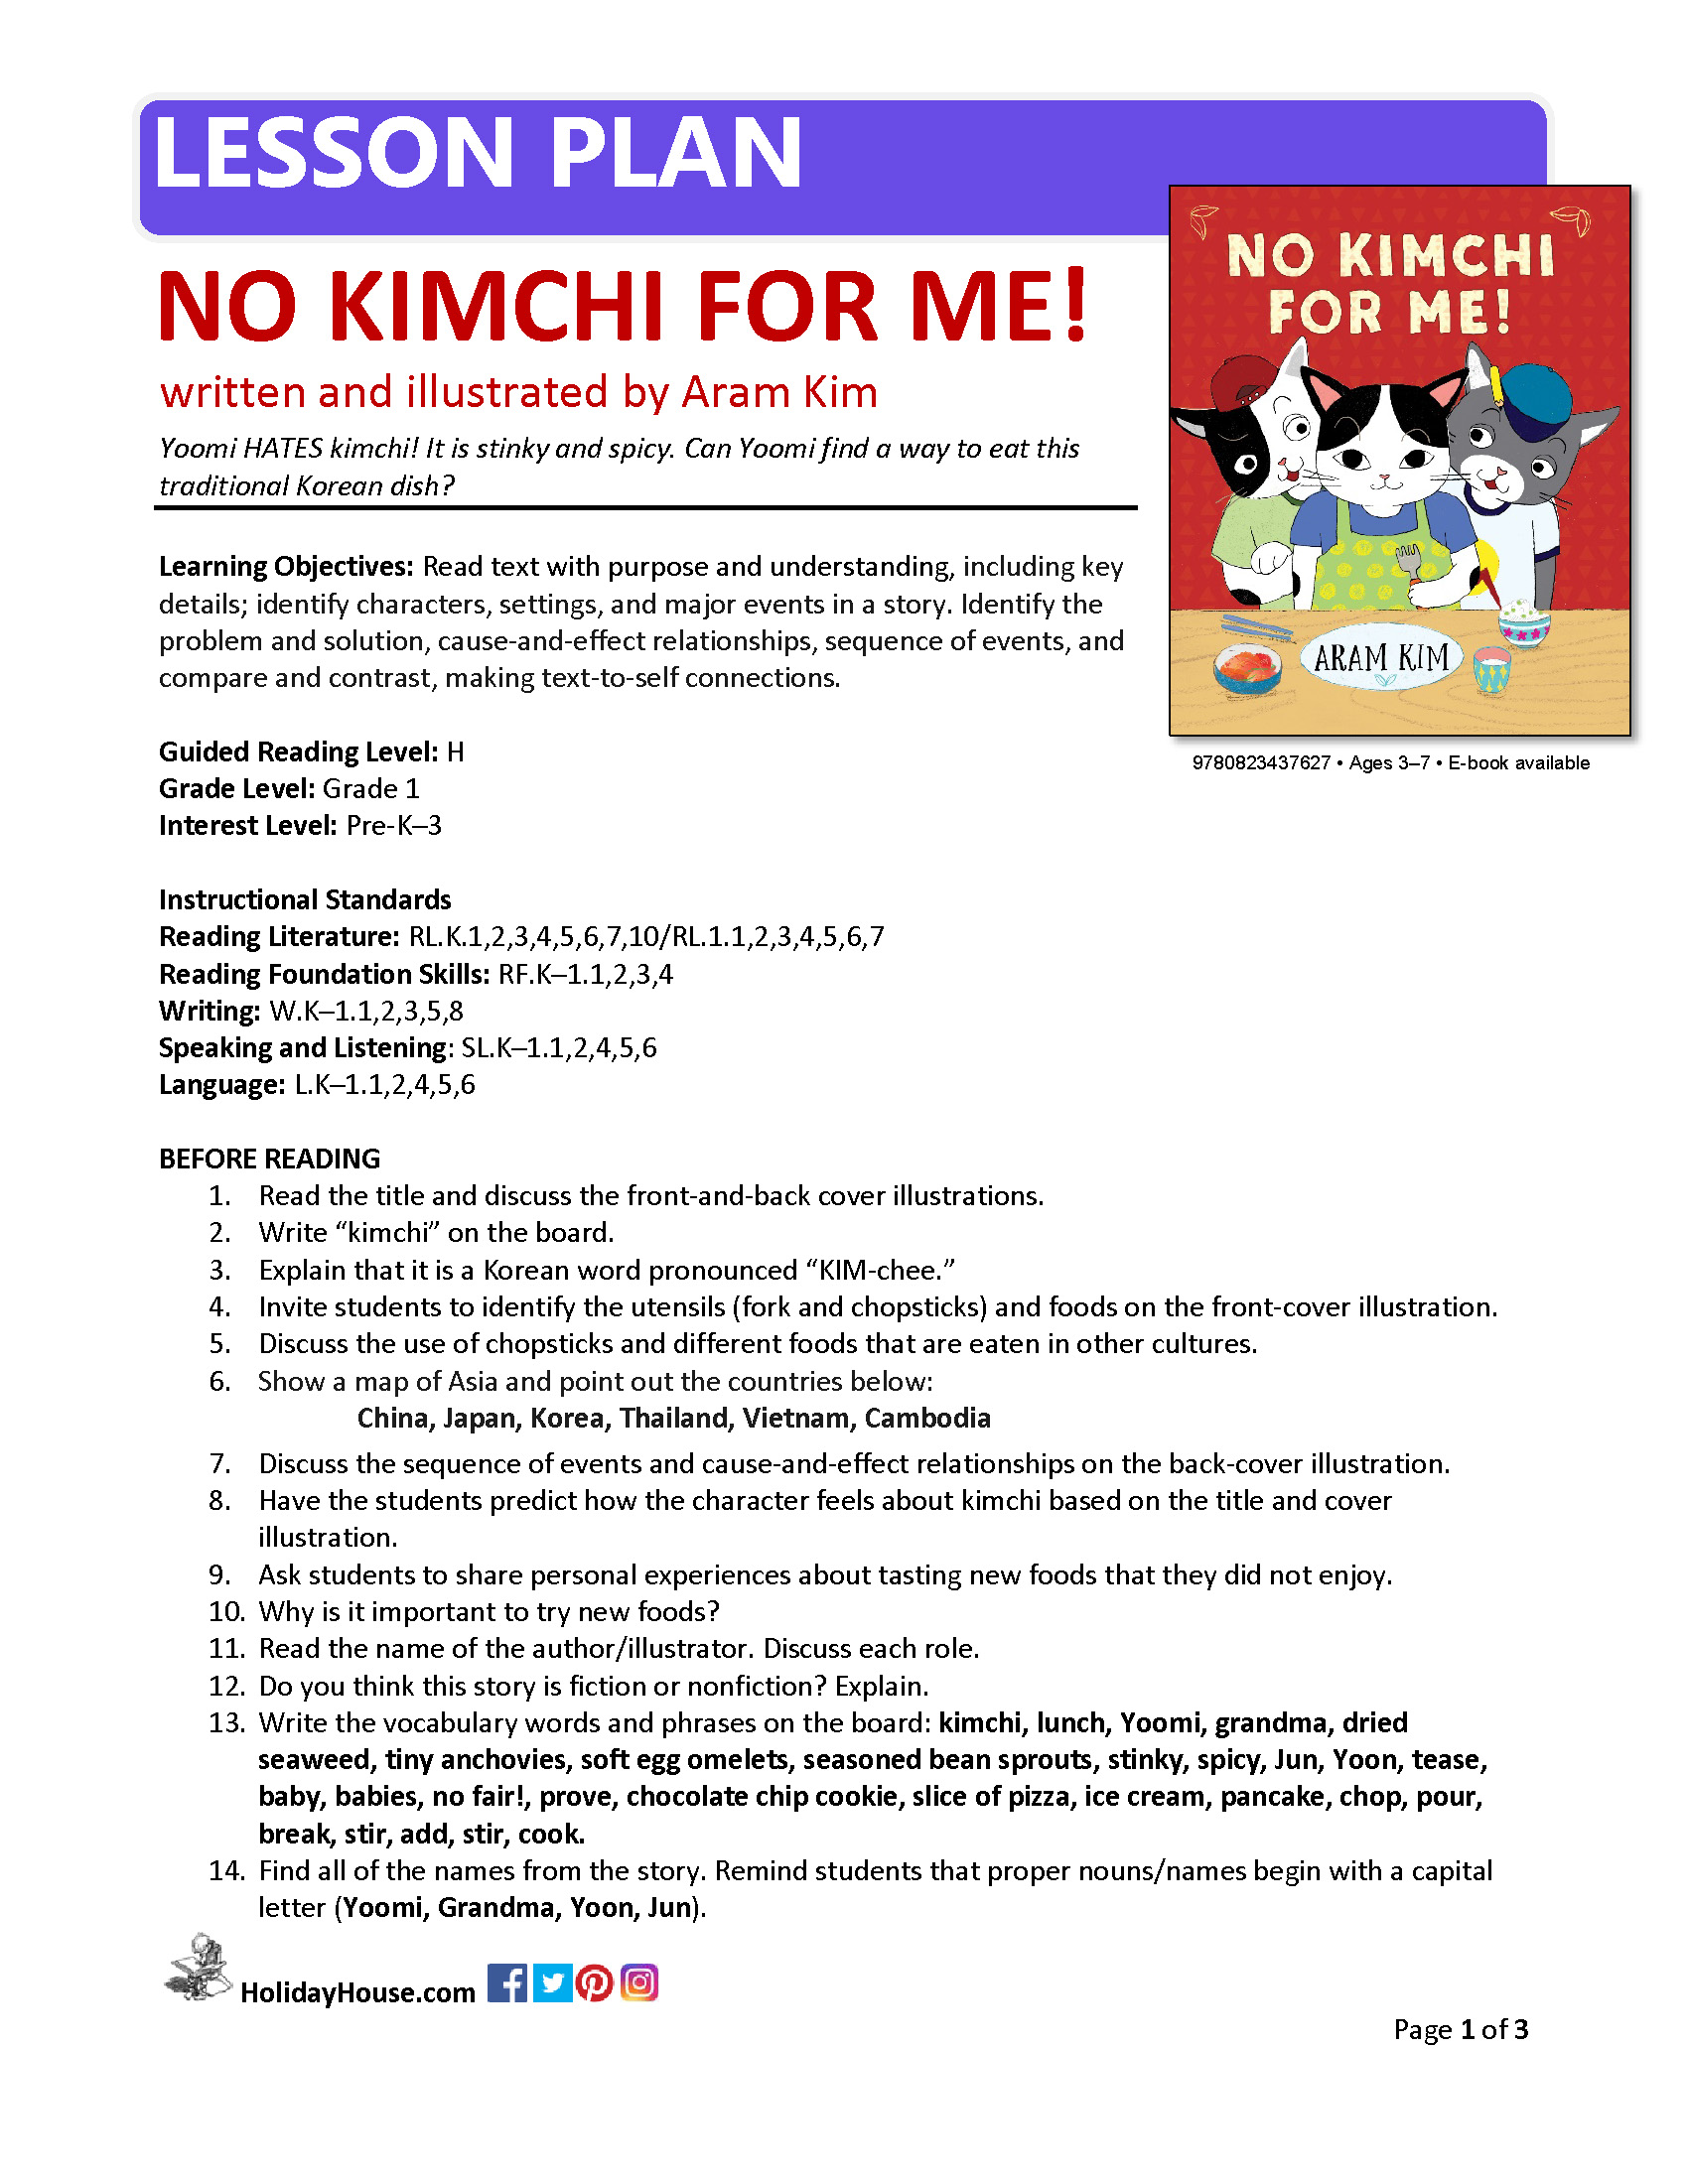 Download the official Lesson Plan for NO KIMCHI FOR ME!